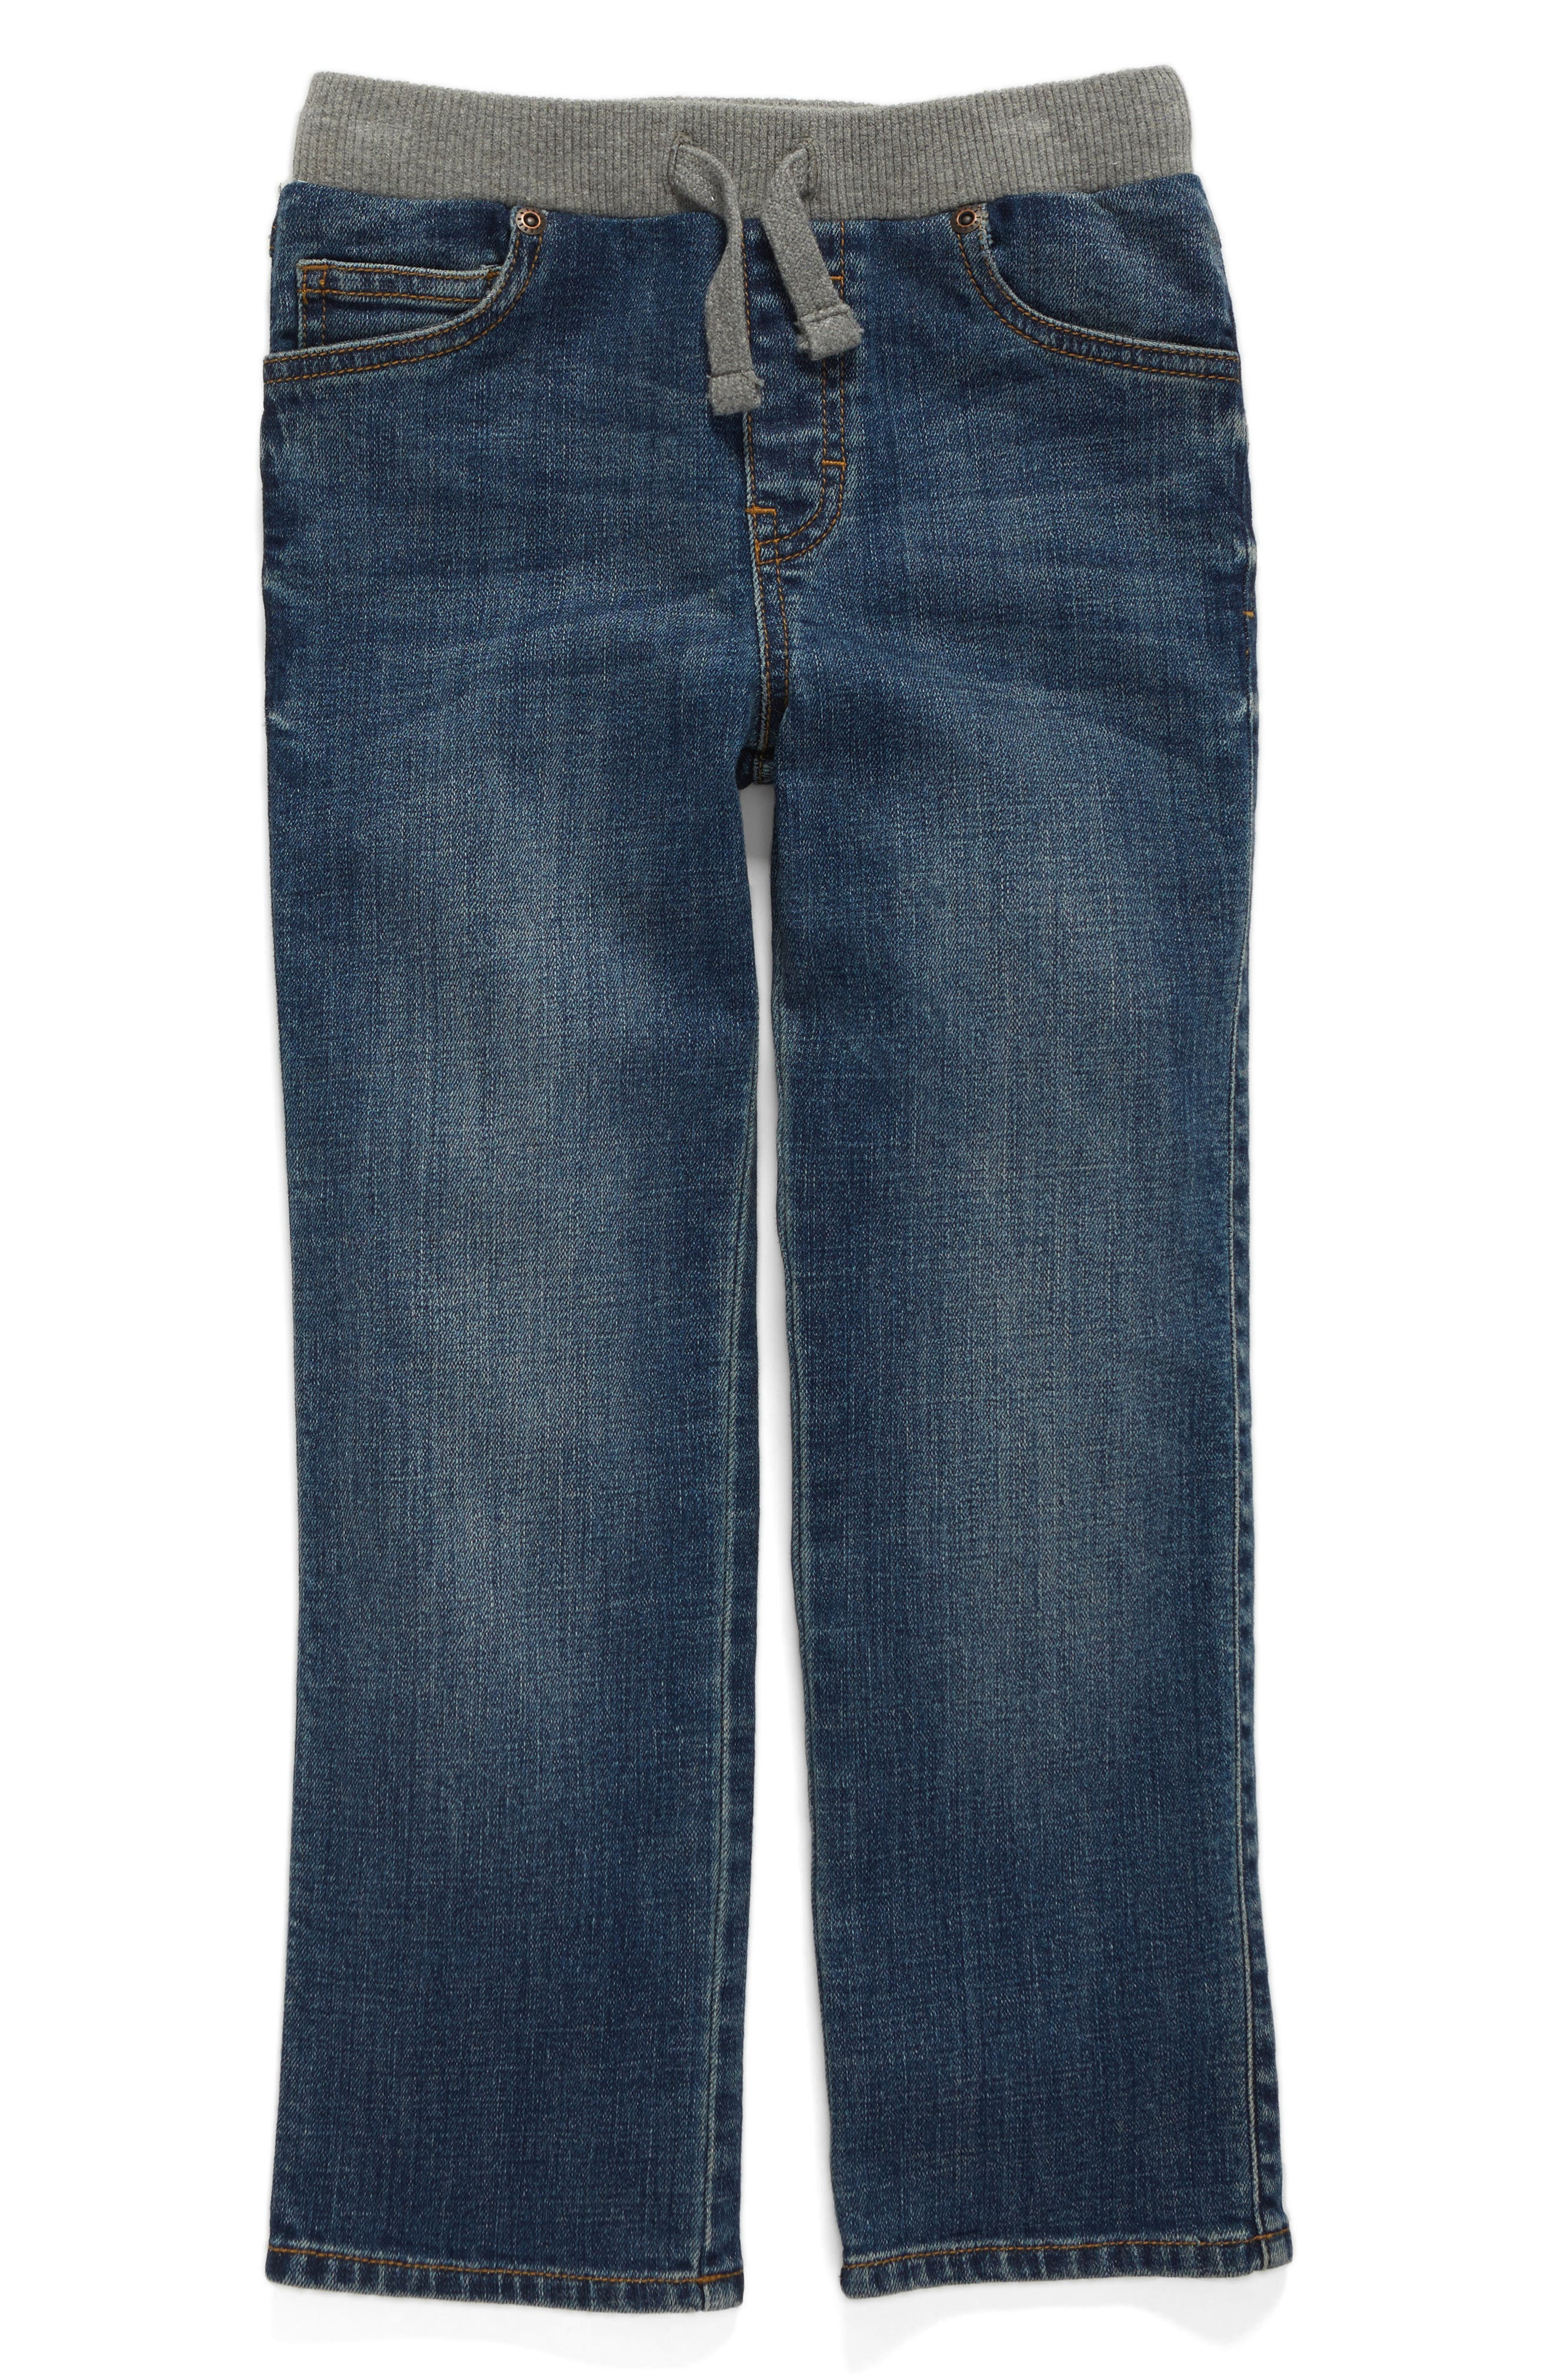 Tucker + Tate Straight Leg Jeans (Toddler Boys & Little Boys)